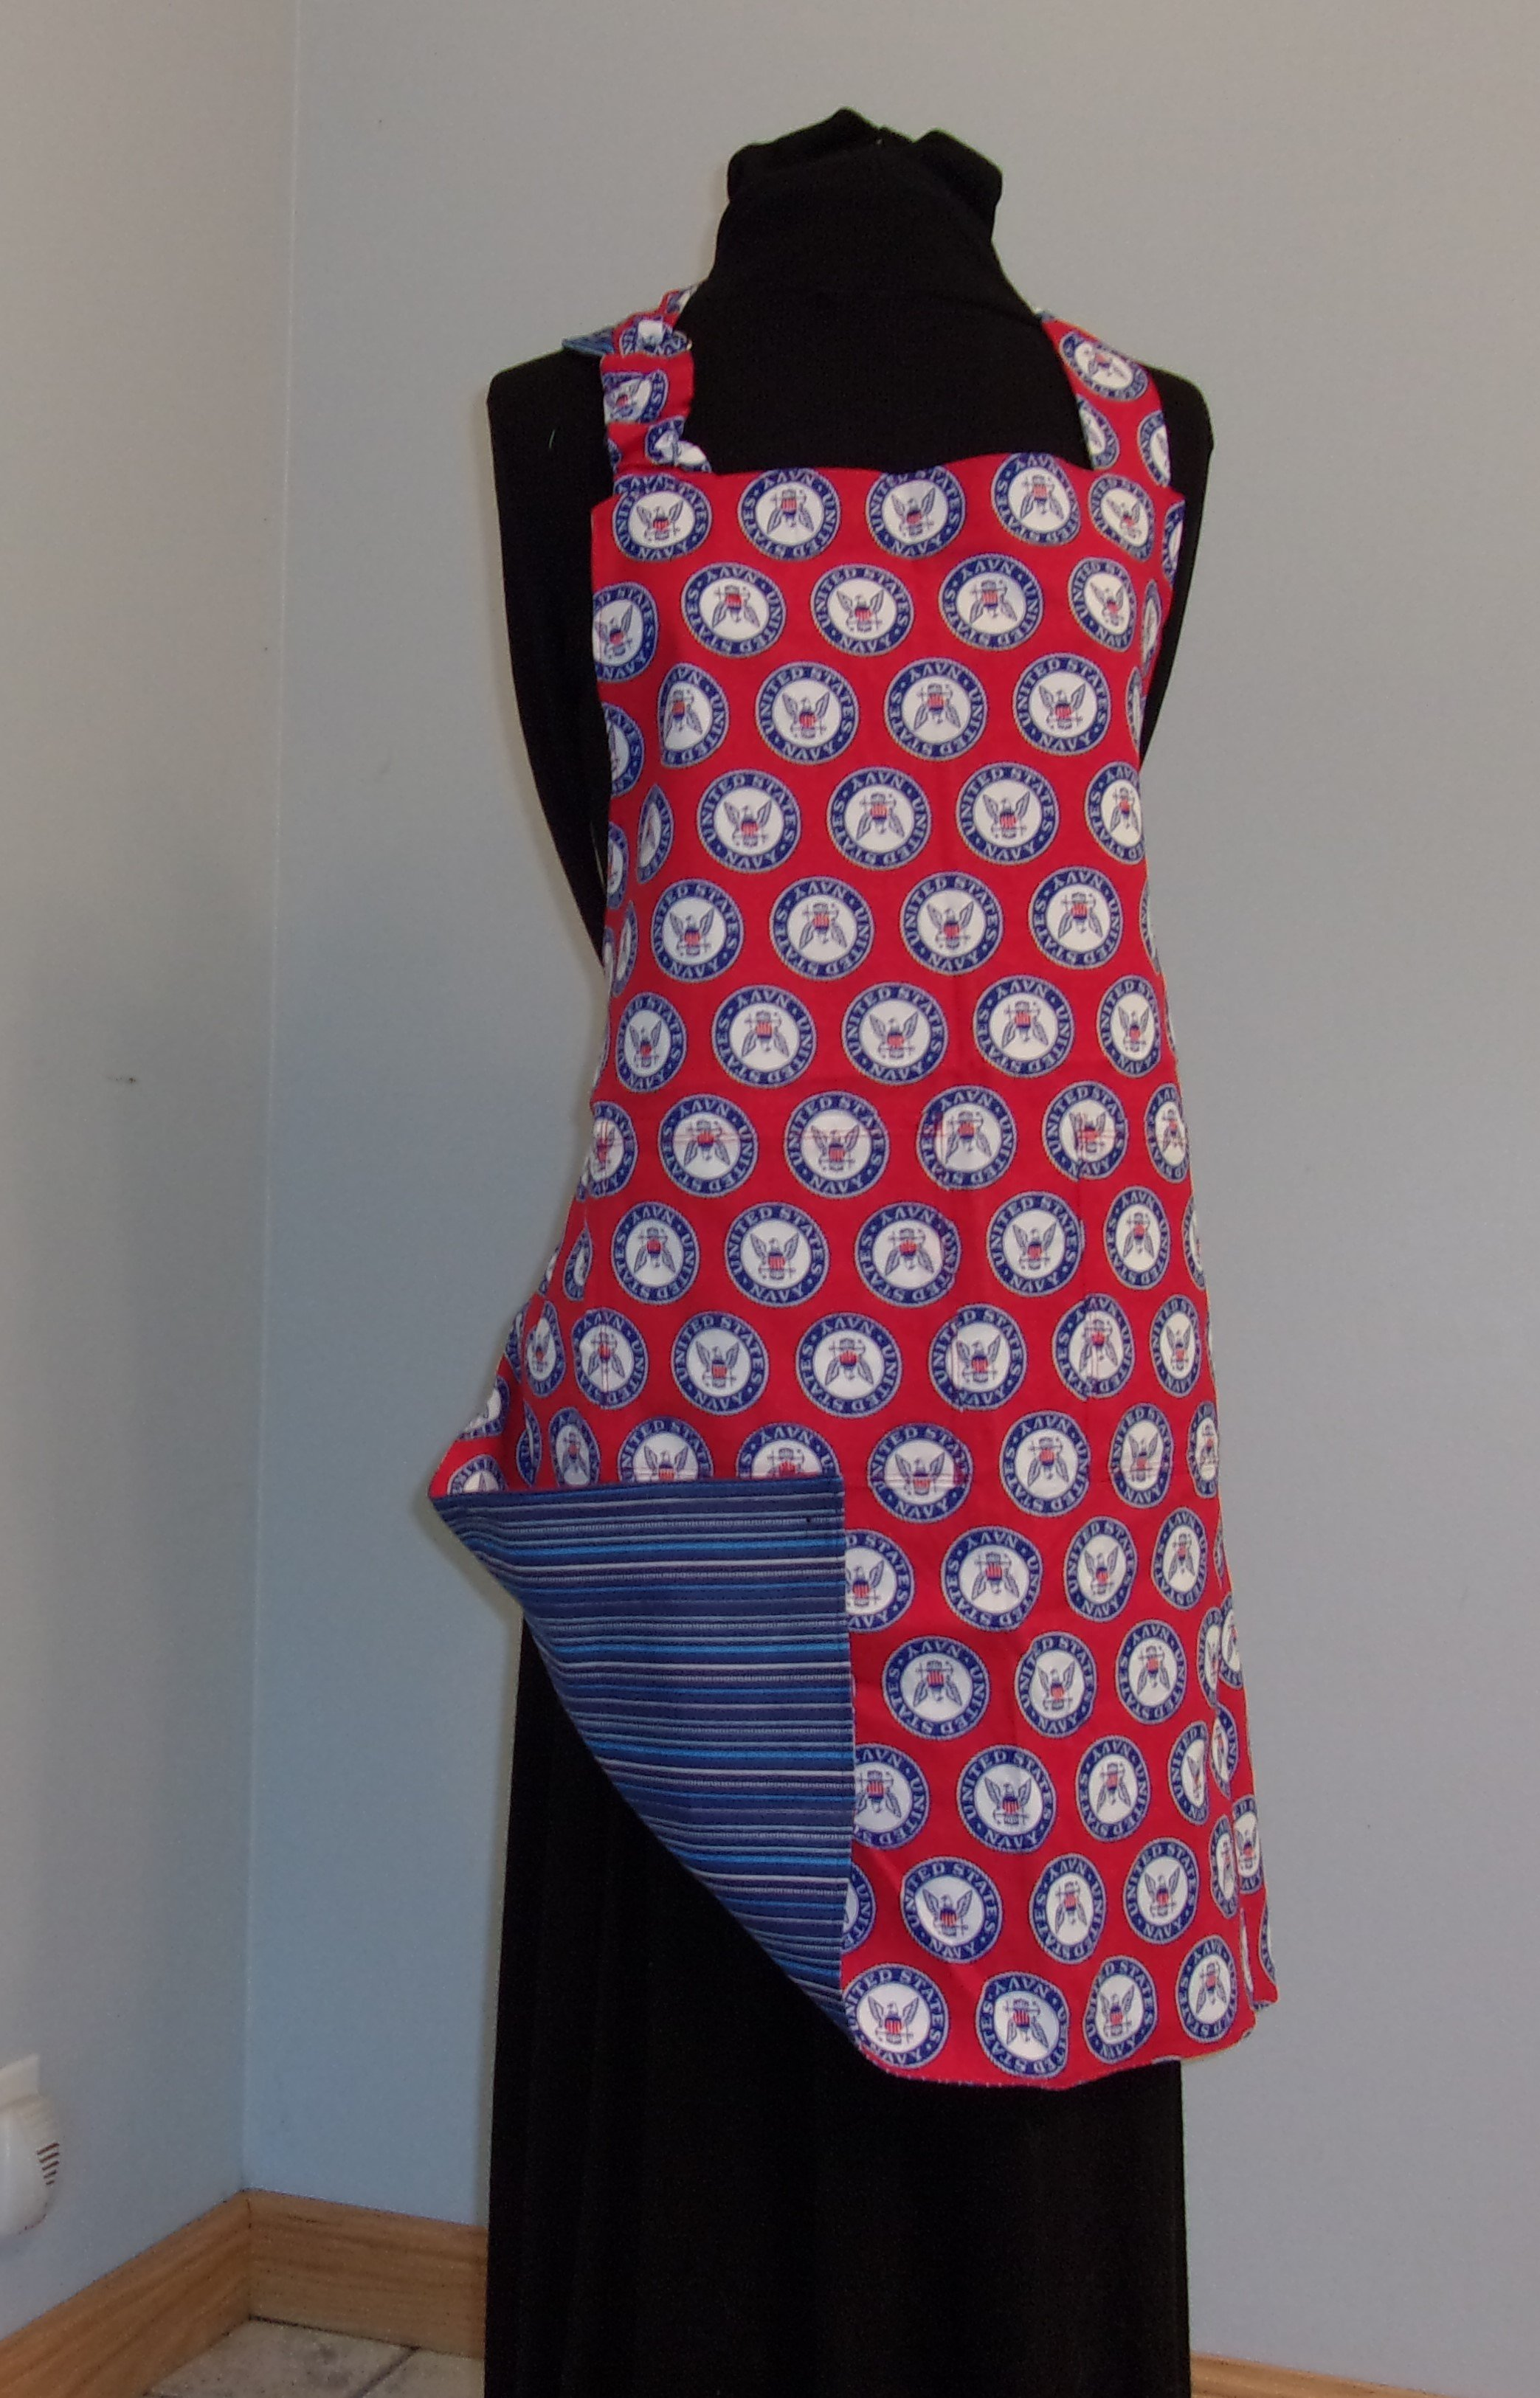 Armed Forces (With images) Apron, Fashion, How to wear